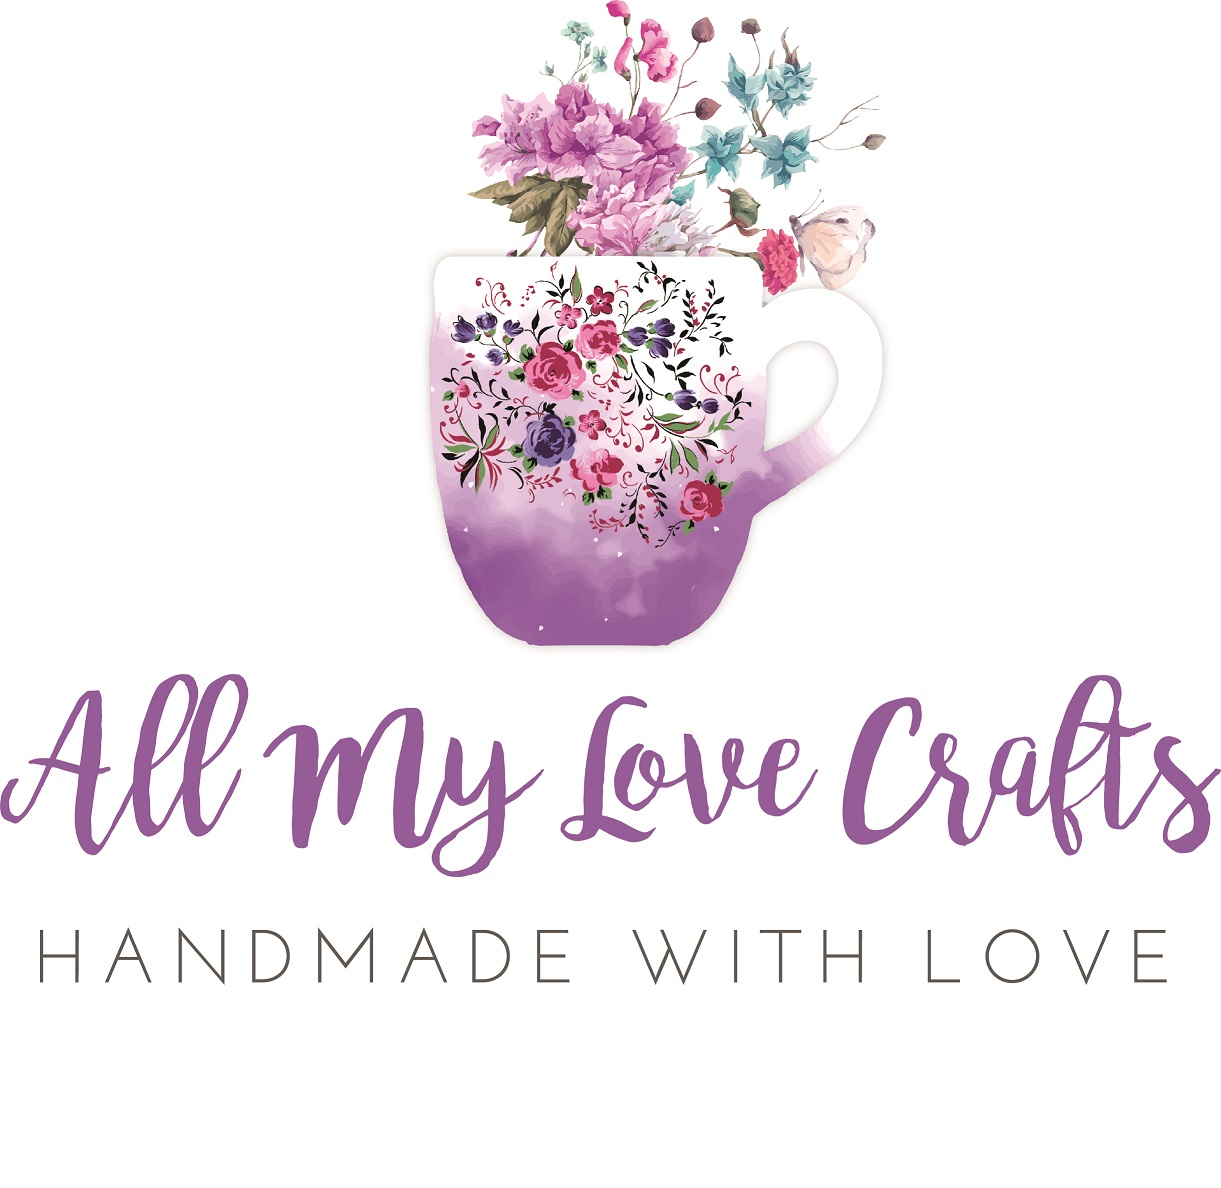 All My Love Crafts